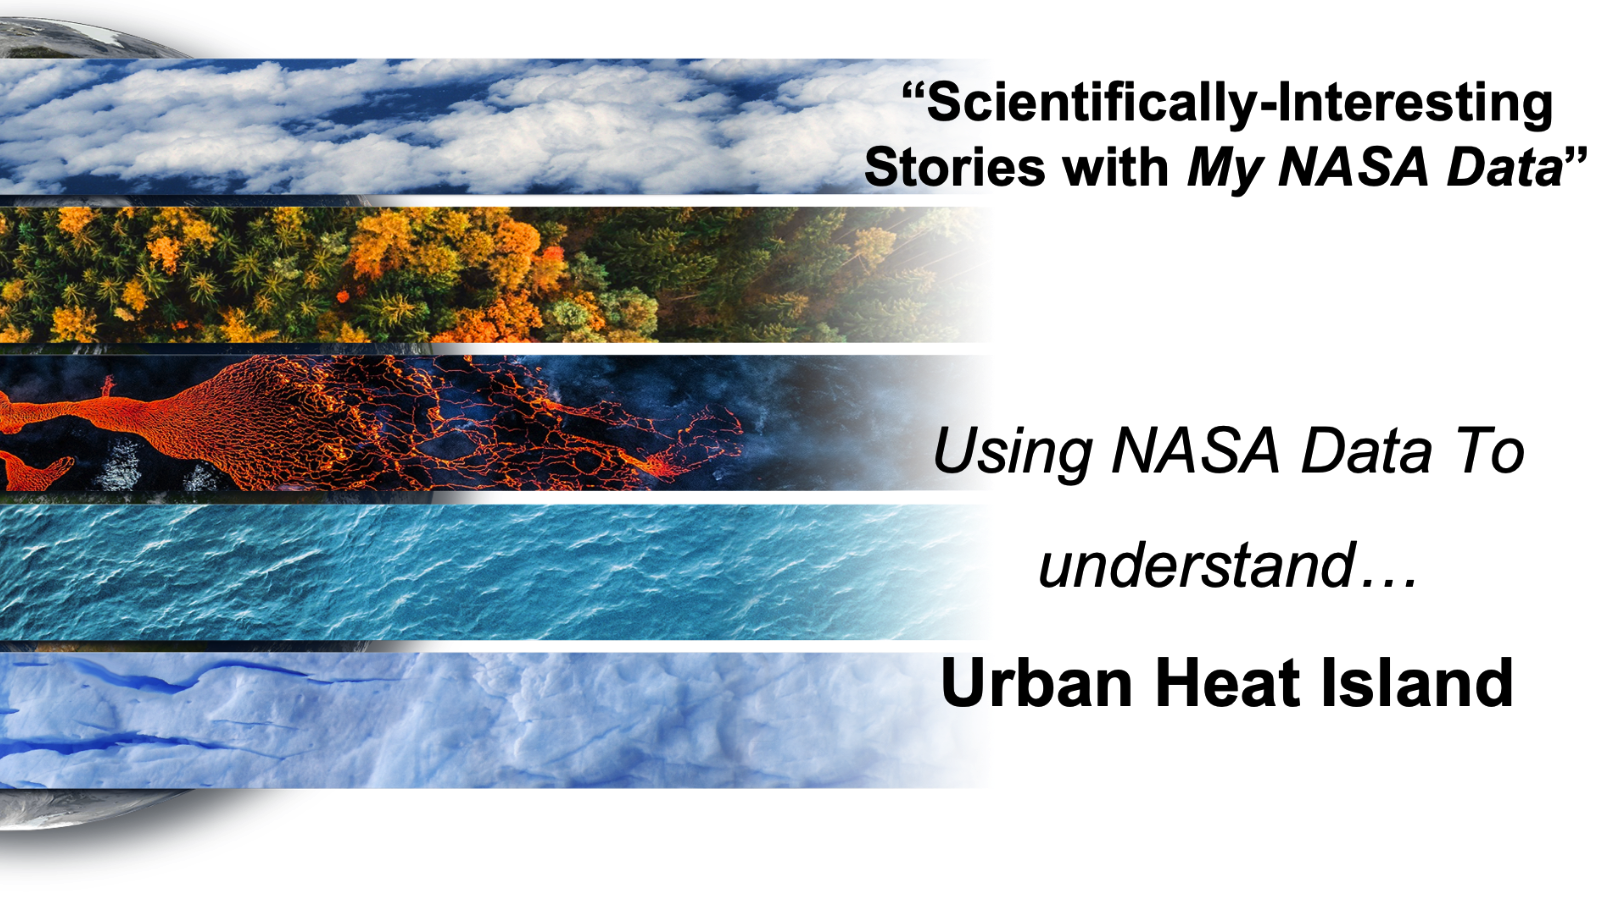 Scientifically-Interesting Storyline of Urban Heat Island